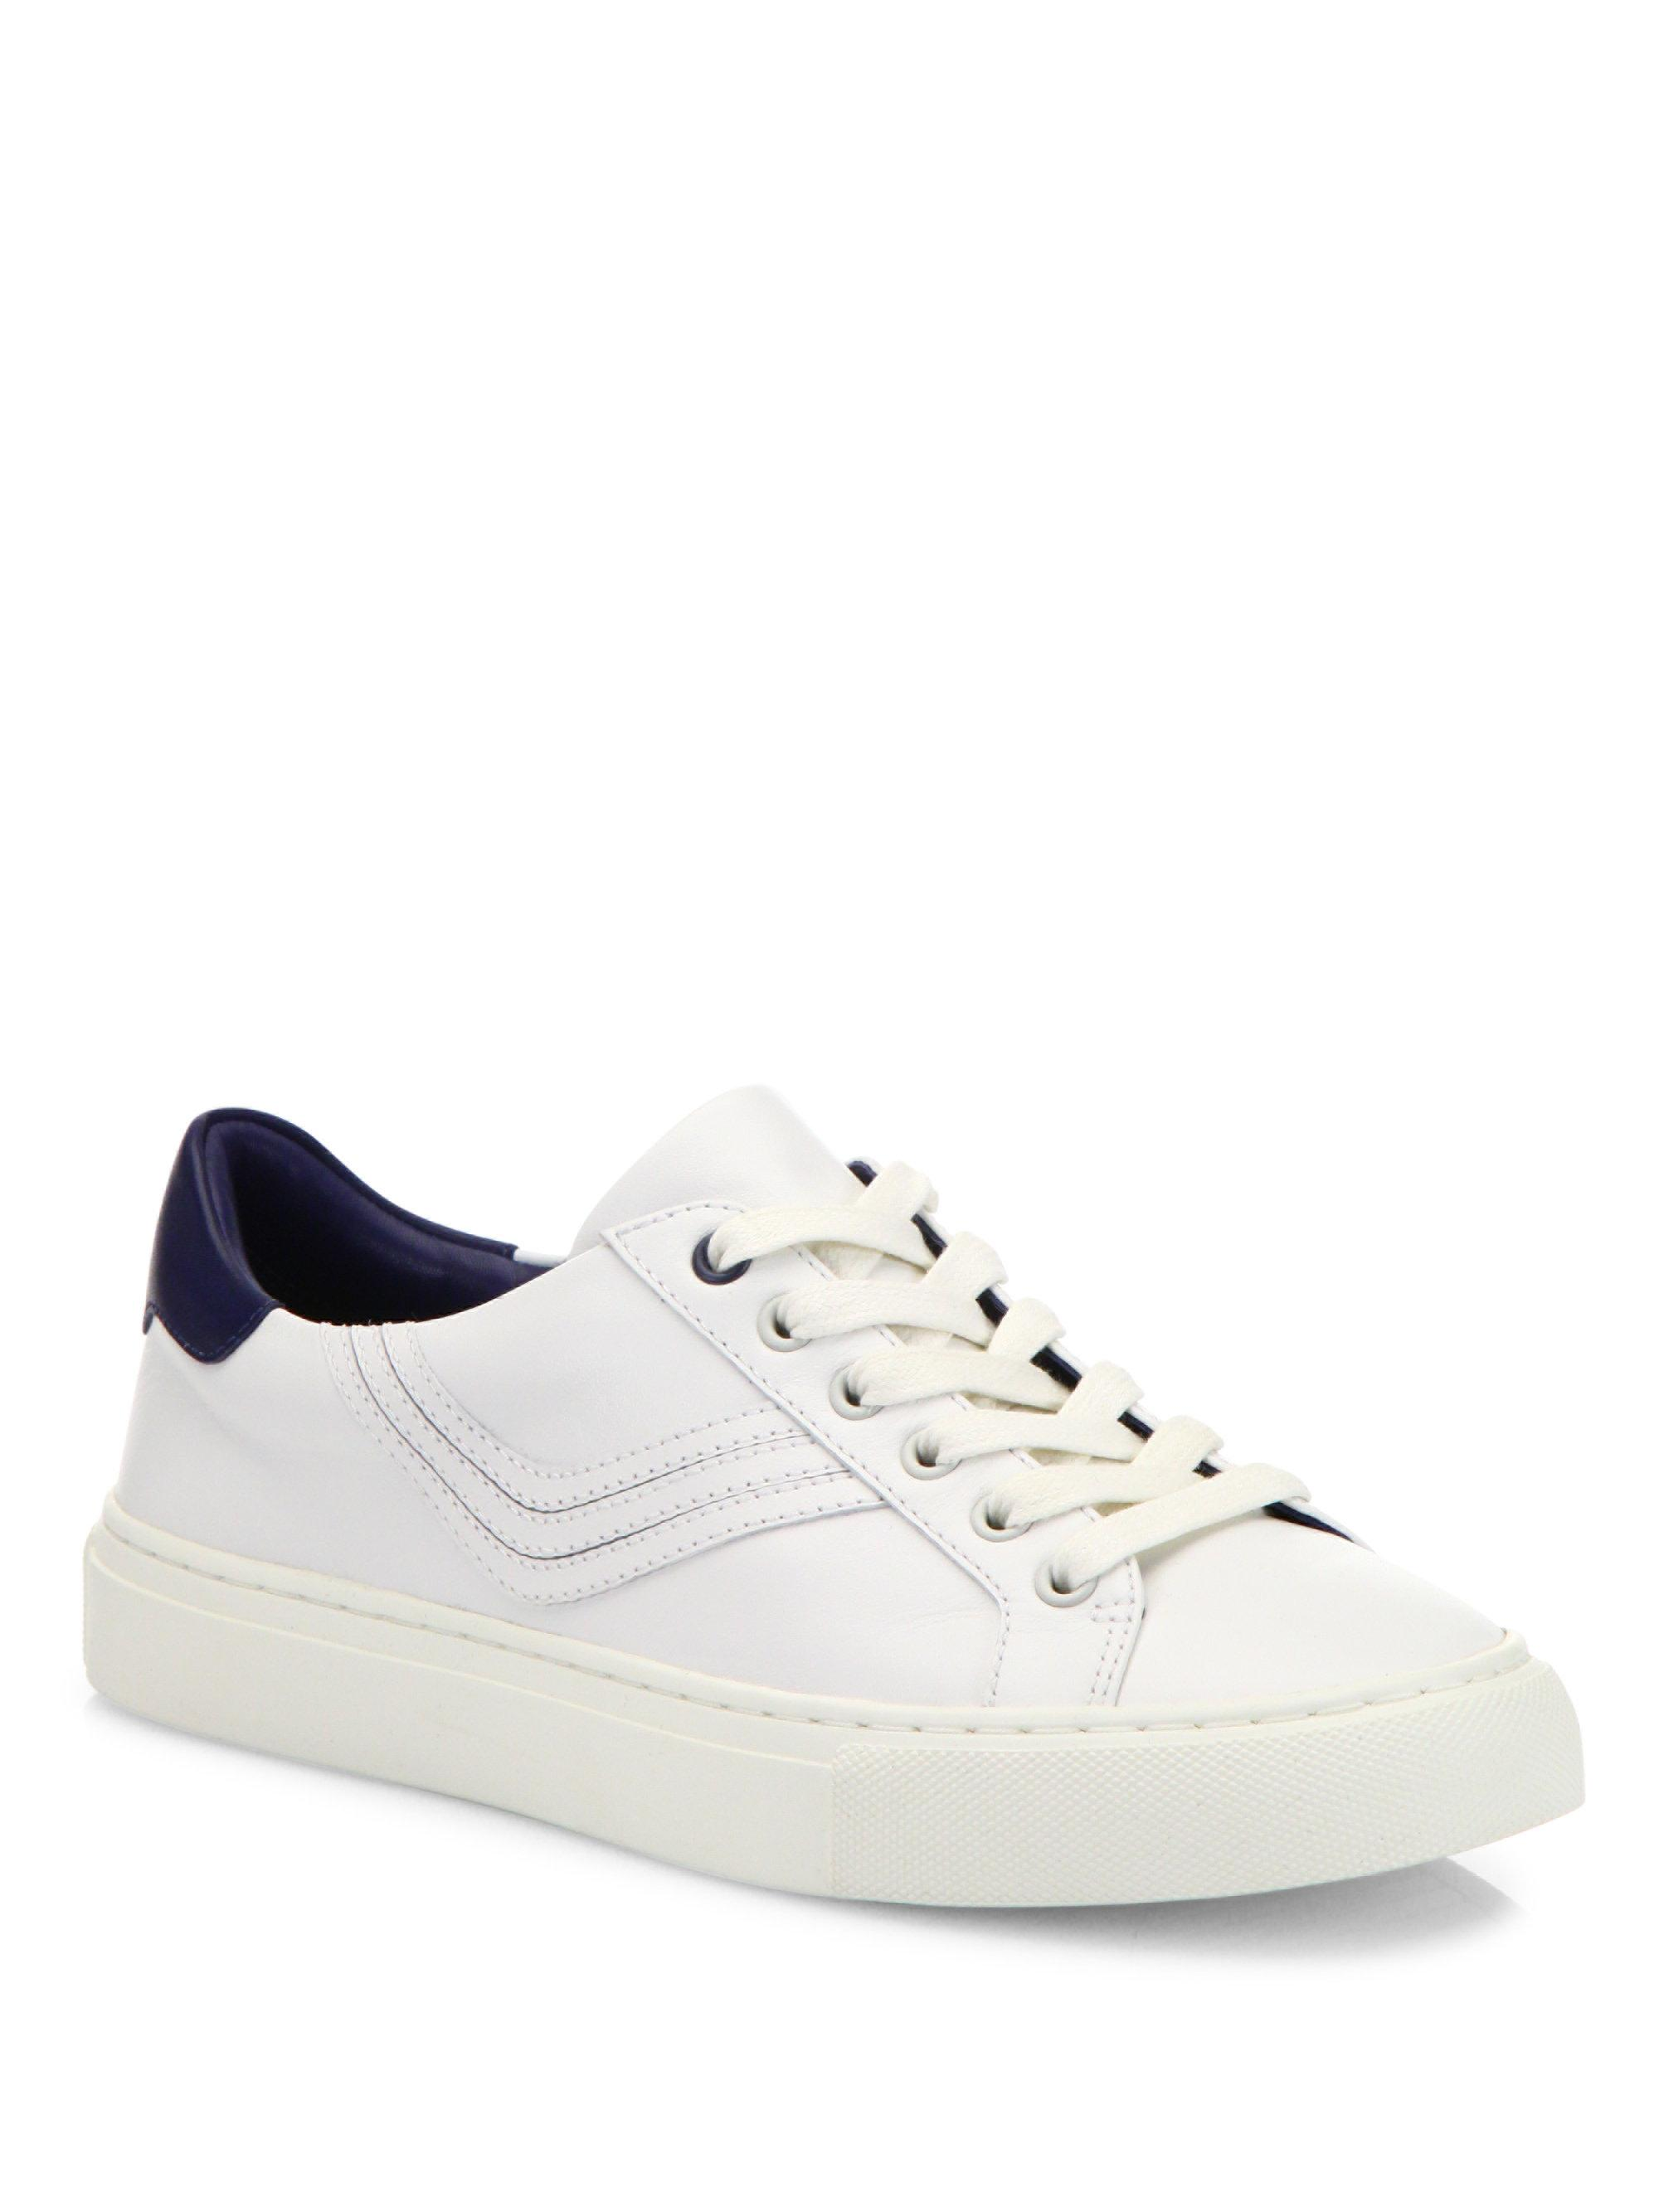 Tory Burch Embossed Low-Top Sneakers sale eastbay NWuxXLhYw